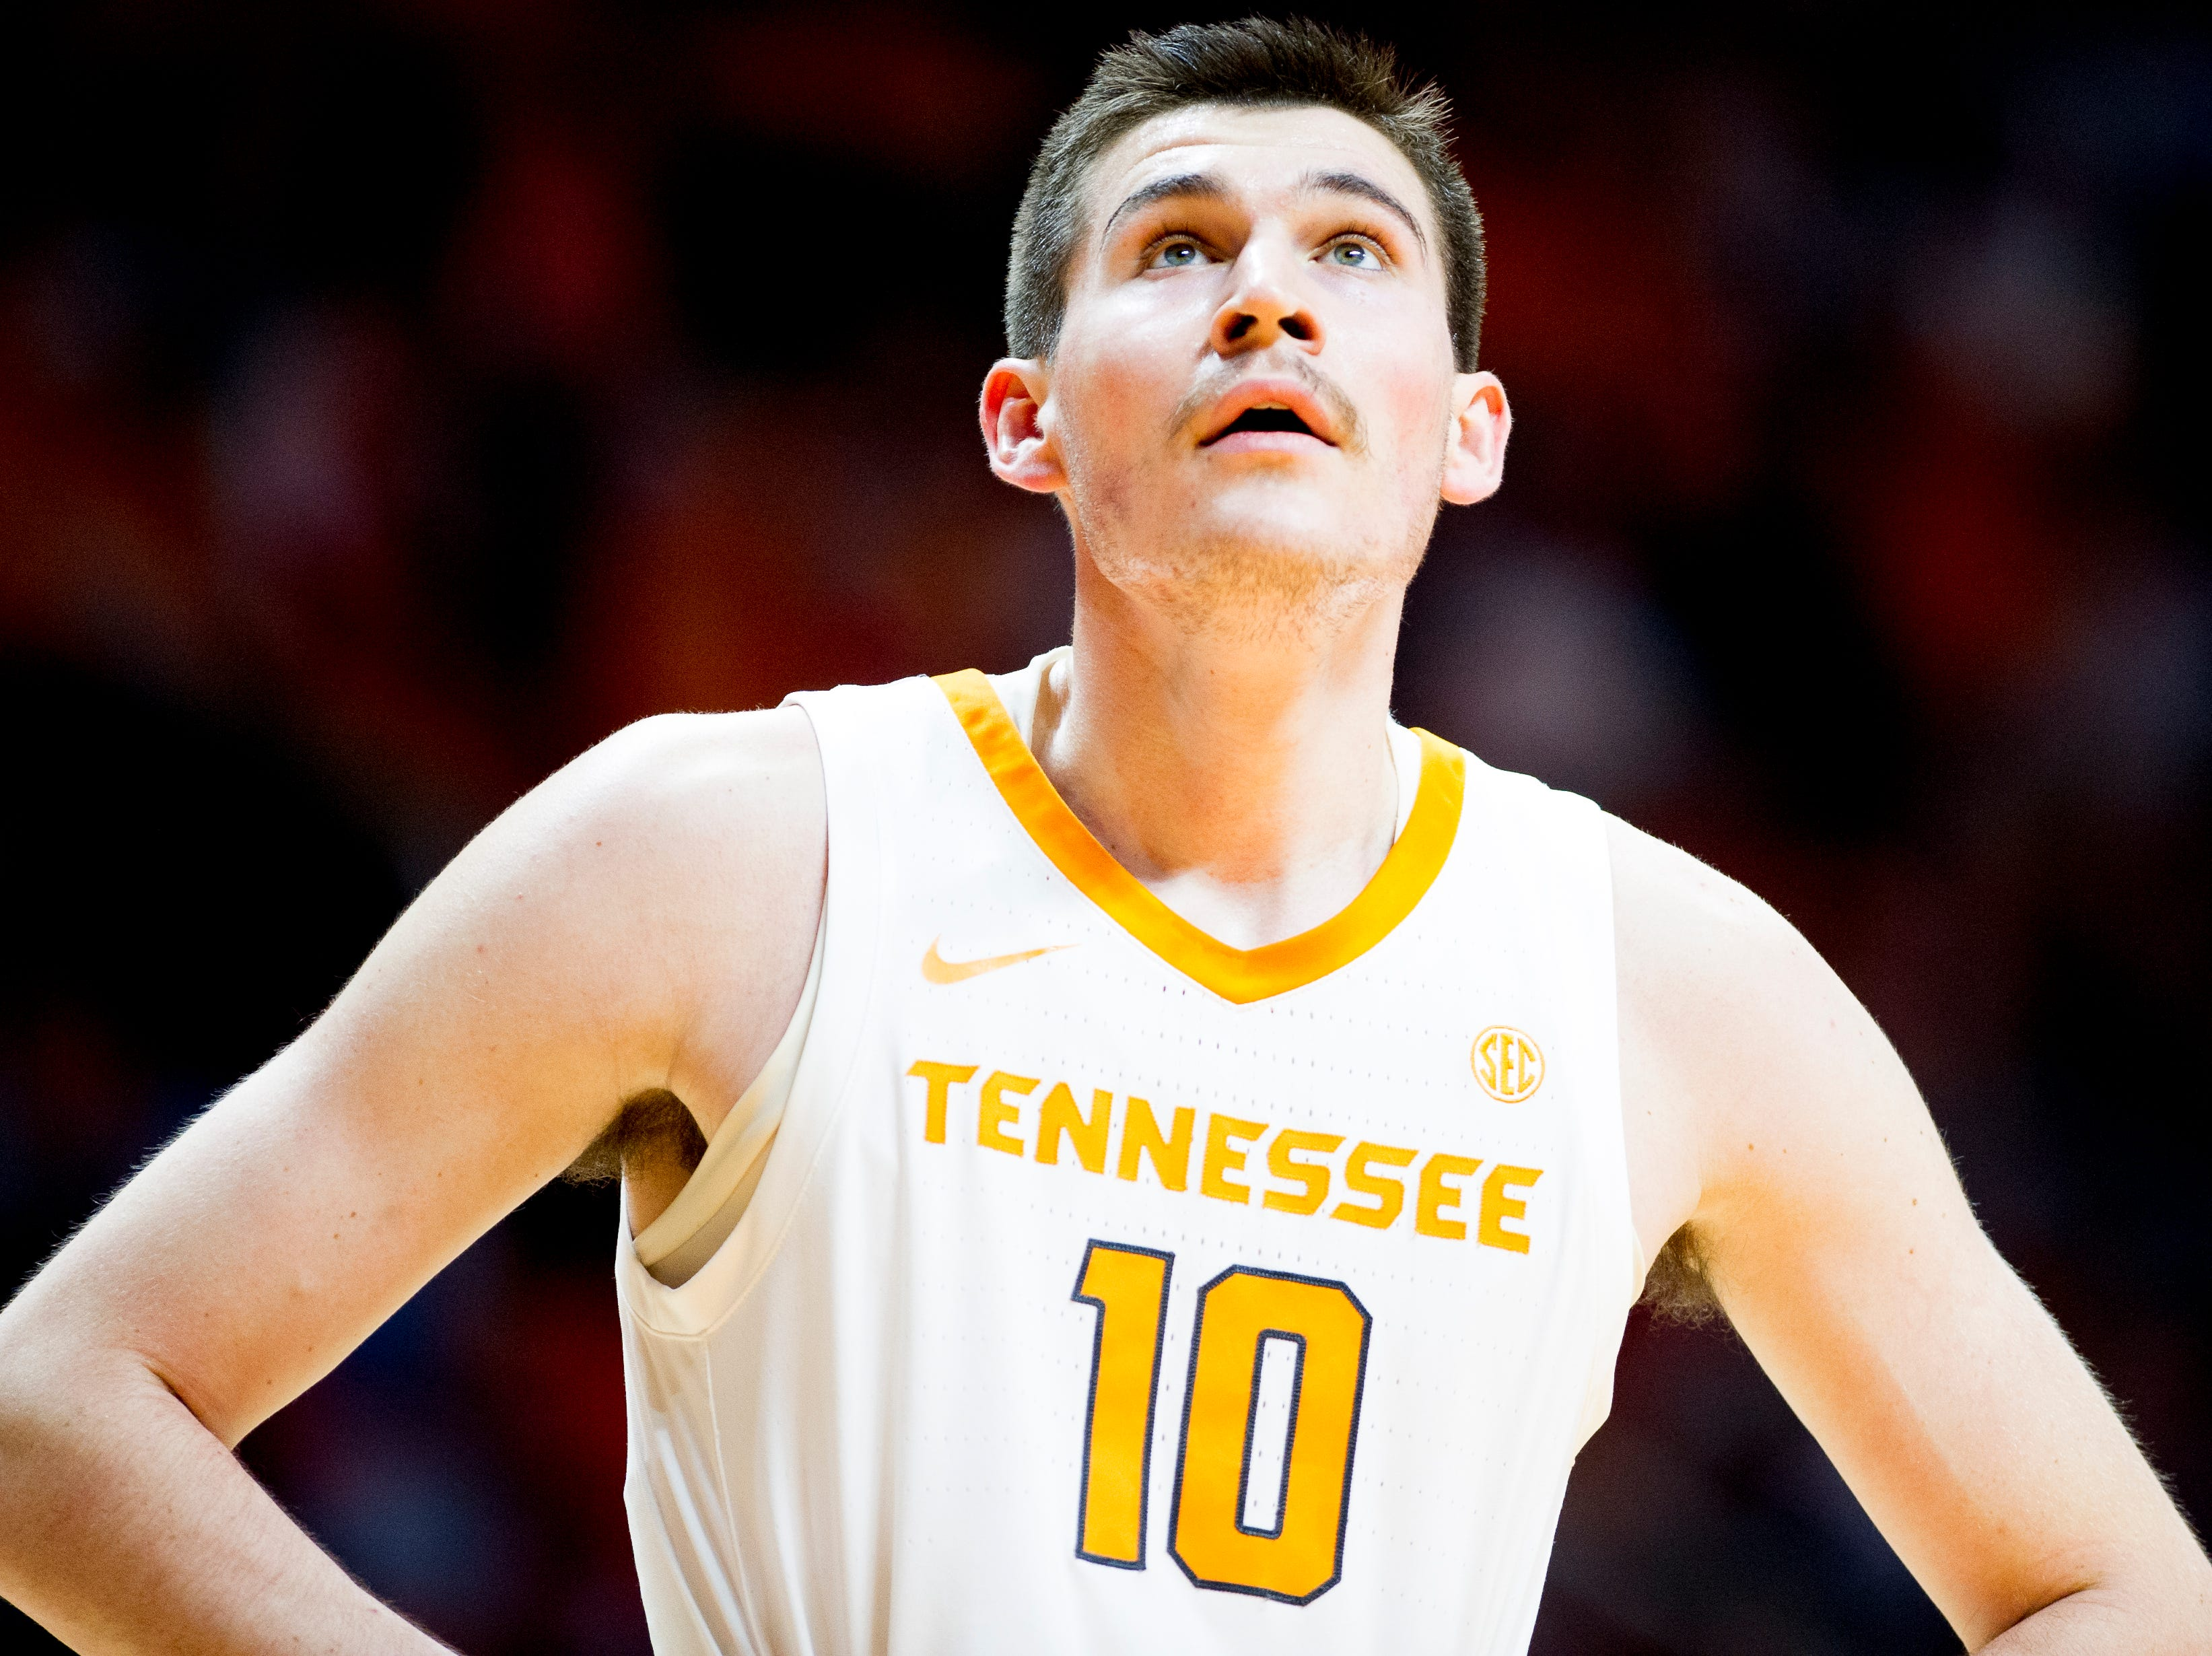 Tennessee forward John Fulkerson (10) during a game between Tennessee and Tennessee Tech at Thompson-Boling Arena in Knoxville, Tennessee on Saturday, December 29, 2018.